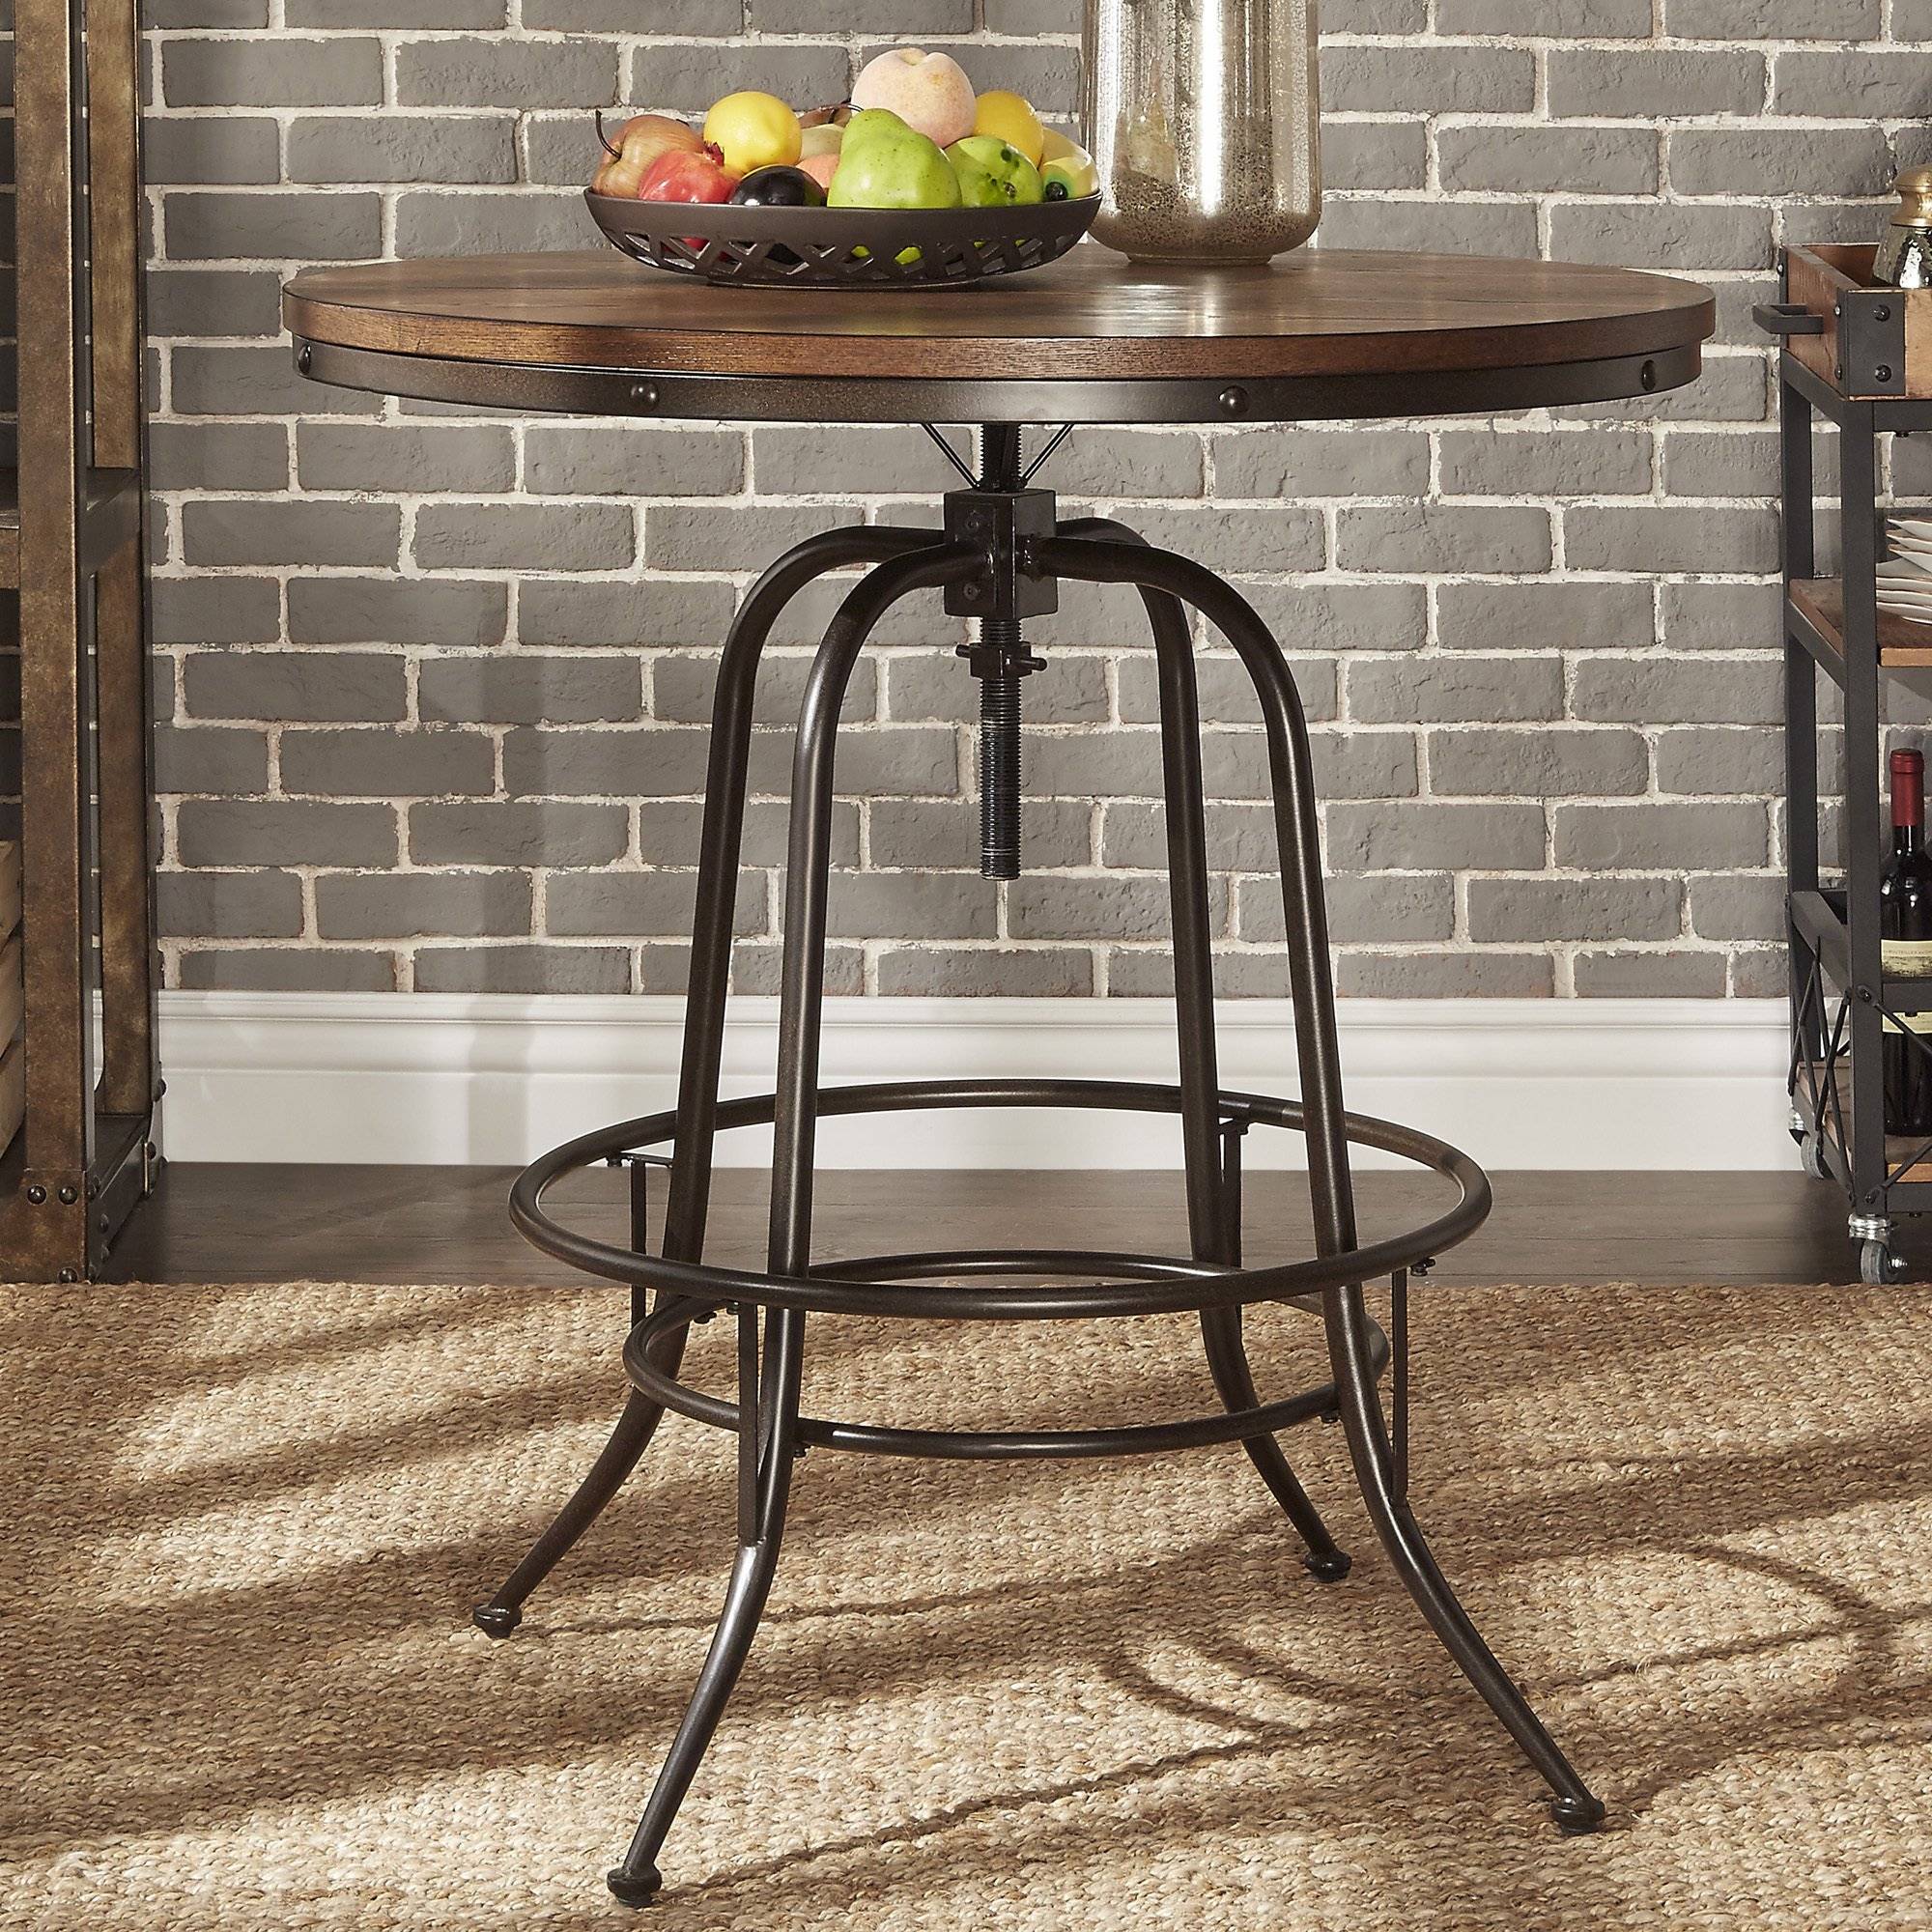 berwick iron industrial round inch adjustable counter height table tribecca home bar accent inspire classic free shipping today hampton bay wicker dining placemats built bbq ideas